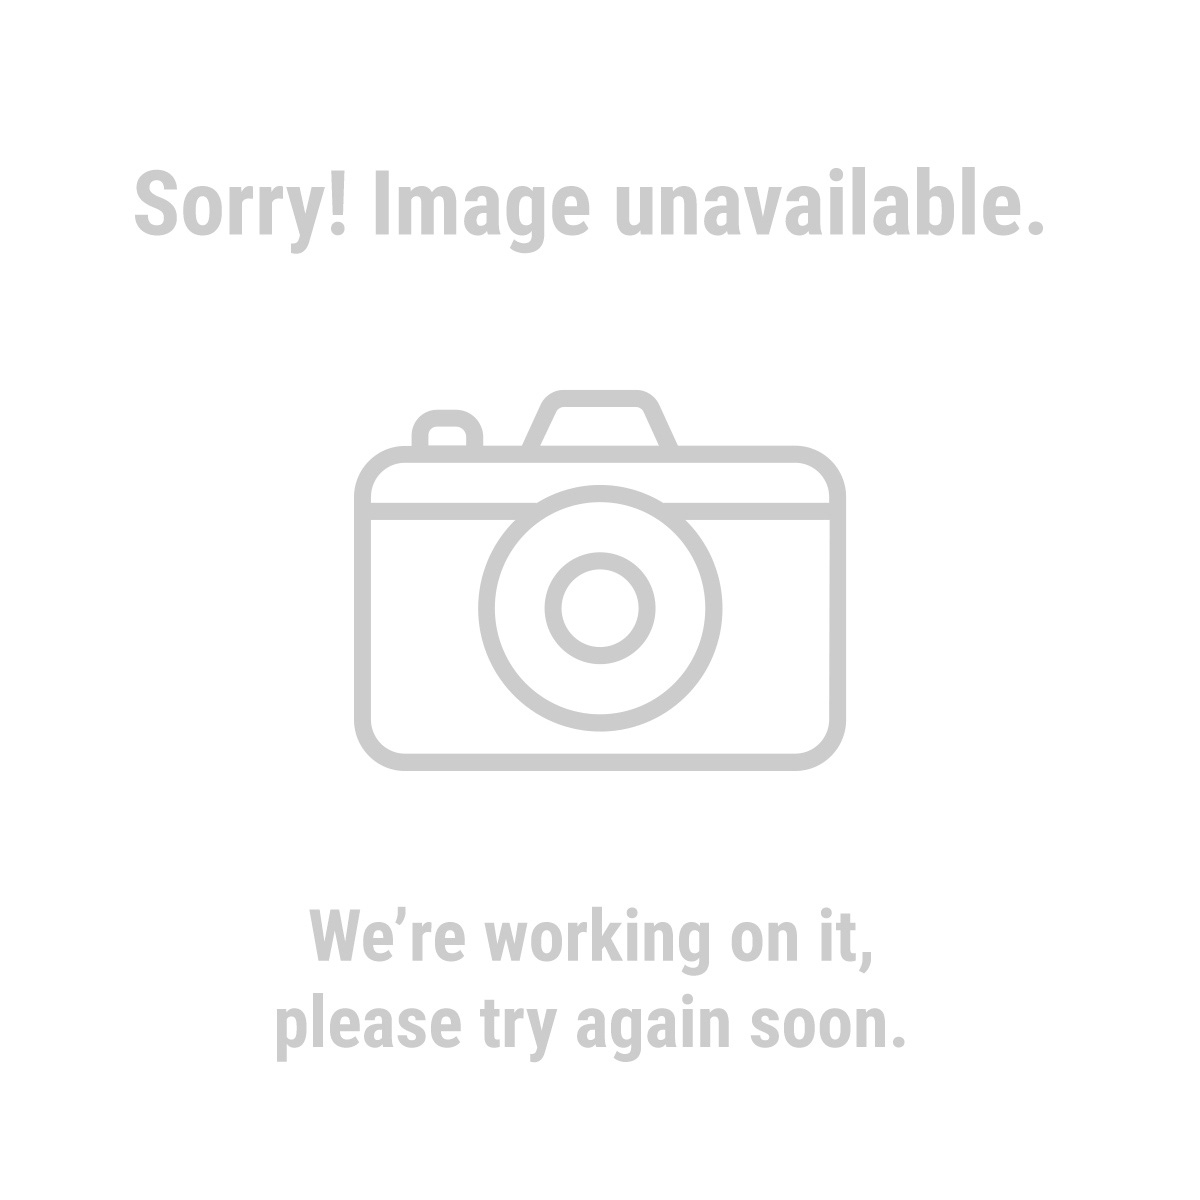 Central-Forge 61551 5 in. Swivel Vise with Anvil